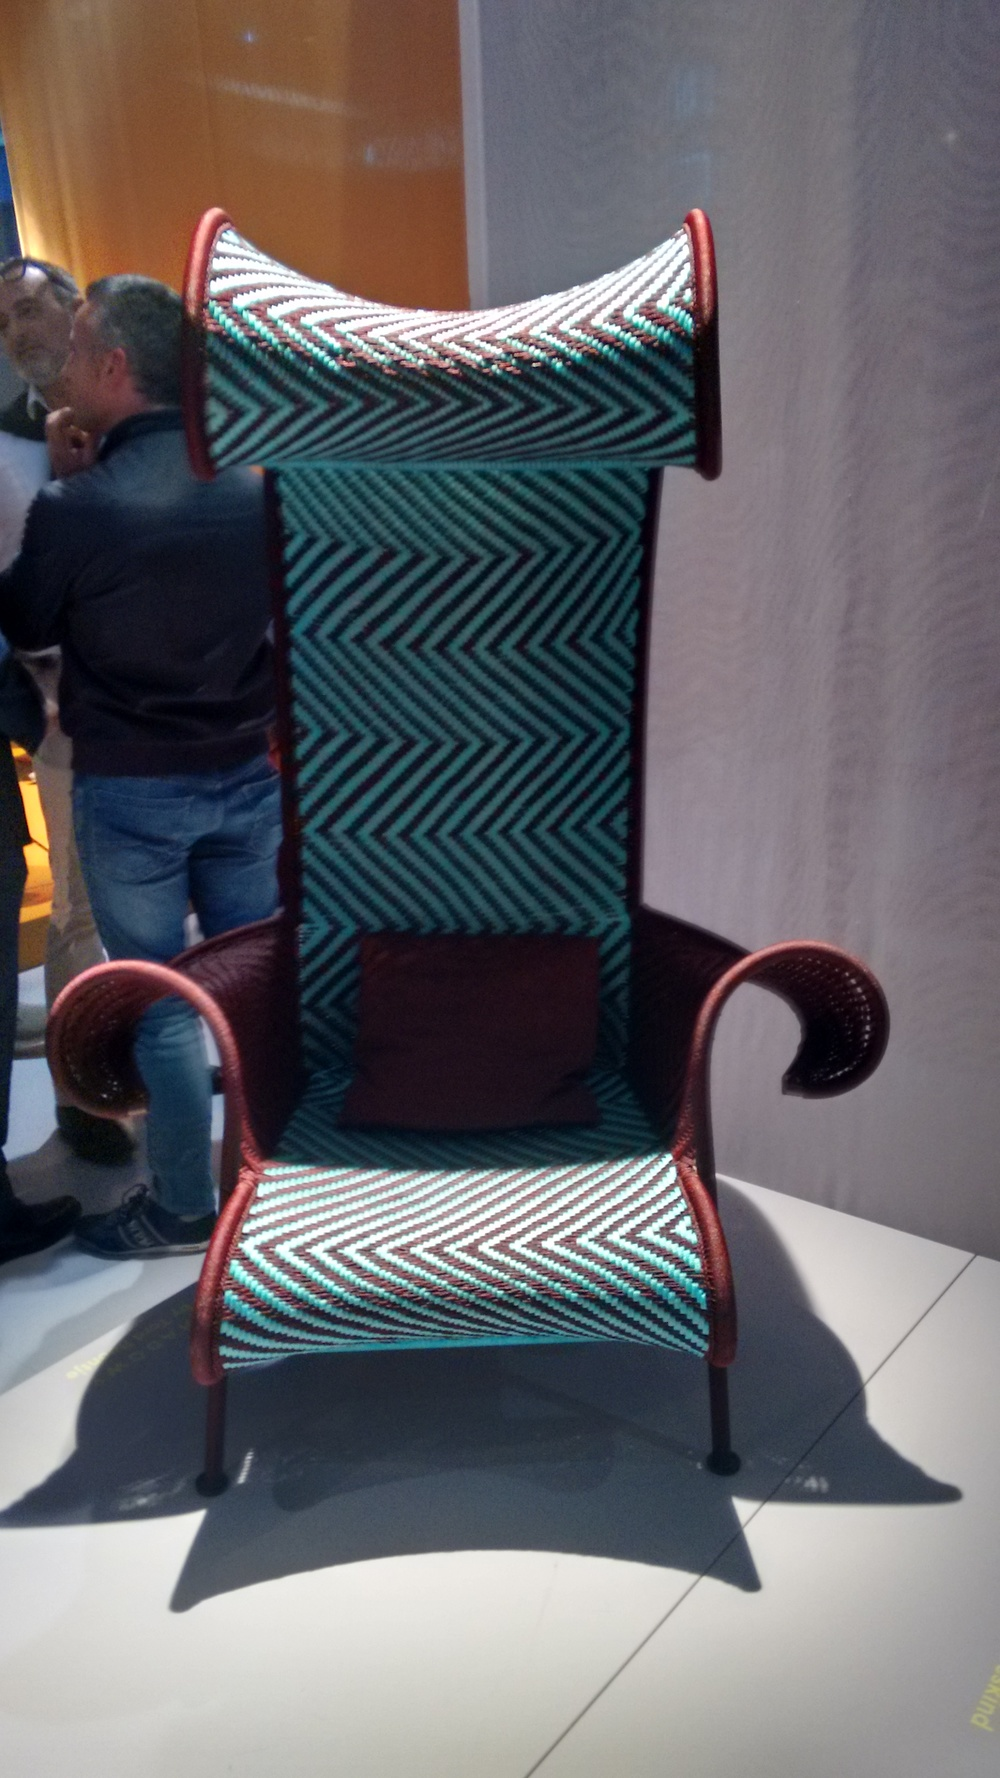 The M' Afrique collection from Moroso was a welcome addition to the fair, using brightly colored woven threads in a variety of pieces. /  La nueva colección M'Afrique de Moroso destacó sobre las tendencias por la originalidad de sus tejidos y sus colores chillones.